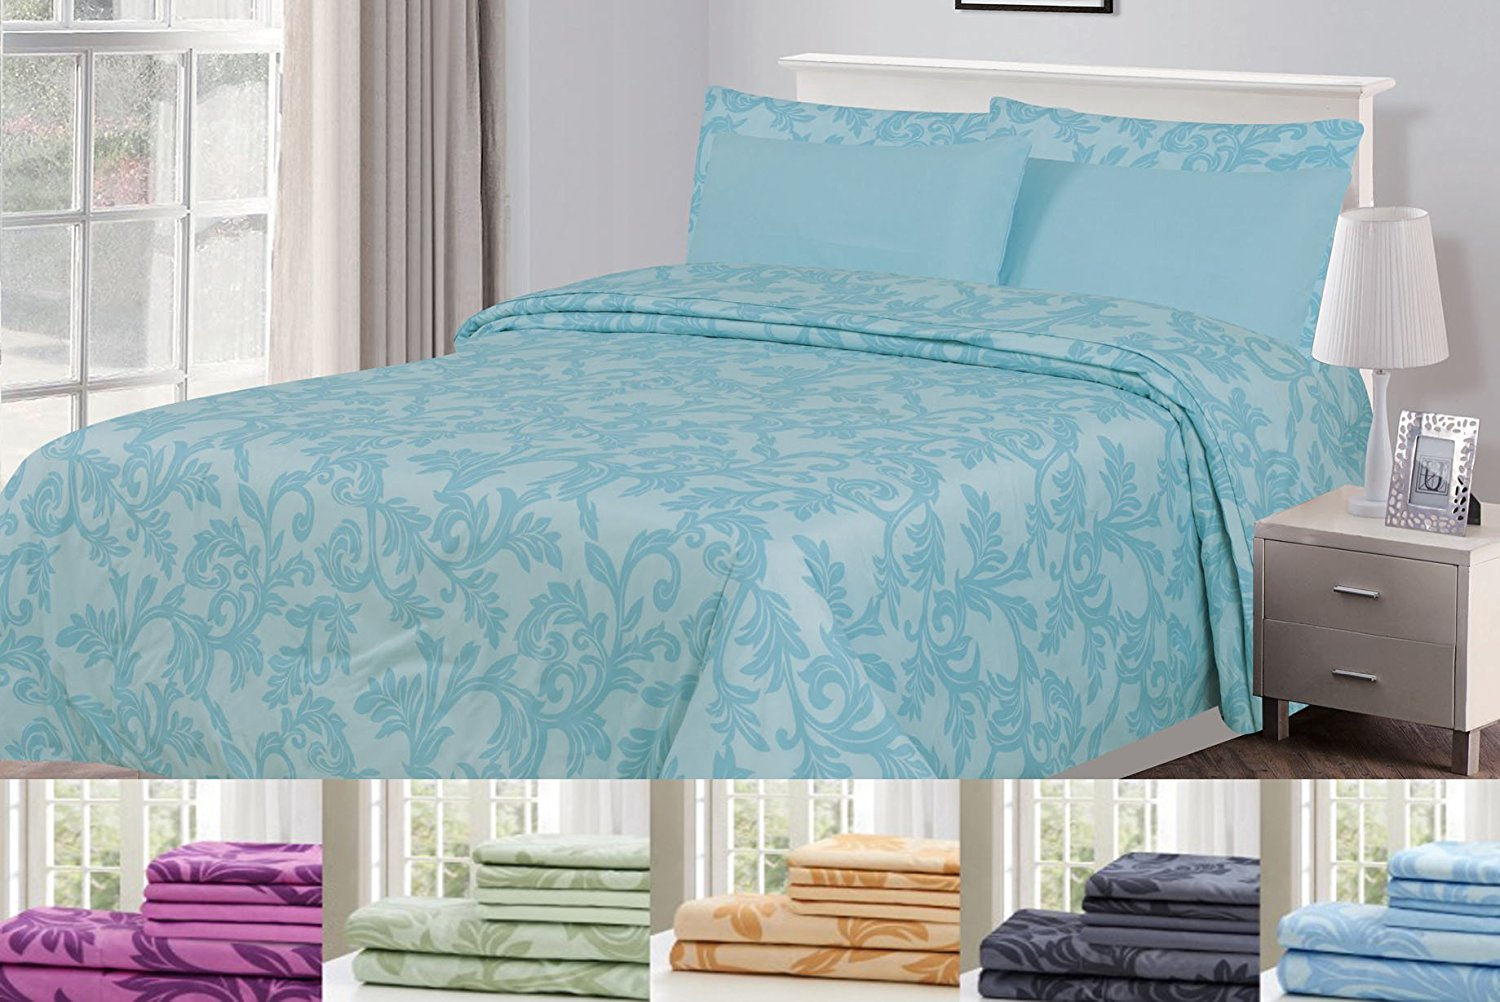 6 Piece: HOTEL LUXURY Kendall Printed Bed Sheet Set, Platinum Extra Soft  And Comfortable Deep Pocket Brushed Microfiber 1800 Bedding   Wrinkle,  Fade, ...